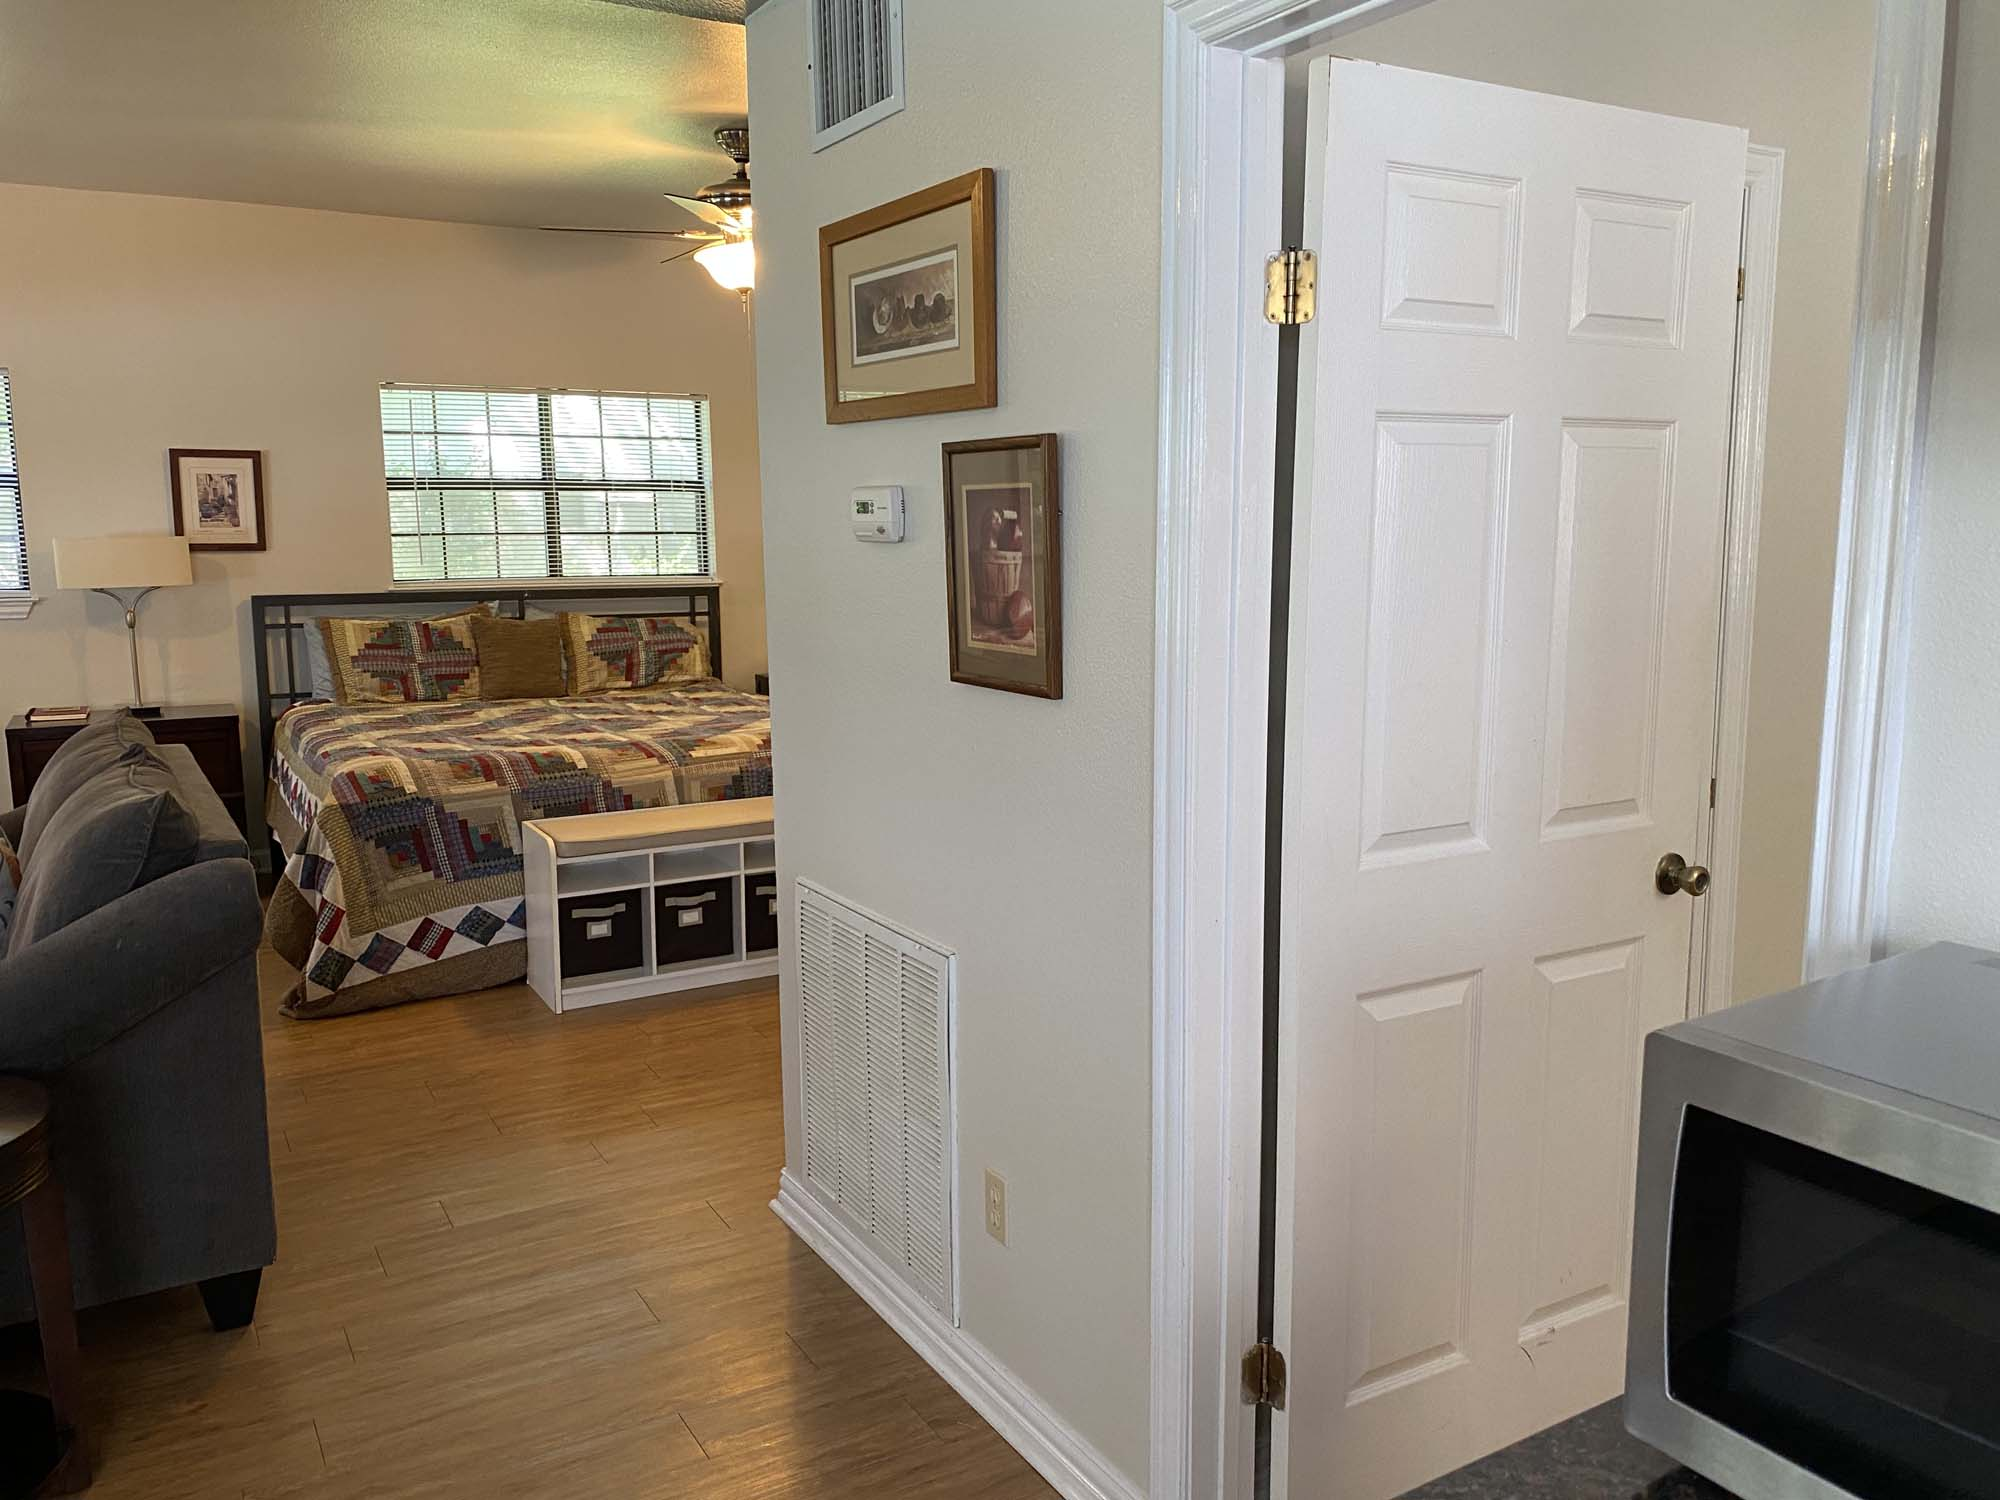 River Studio - TWO DAM GUEST COTTAGES - Contact Hill Country Premier Lodging at 512-847-7460